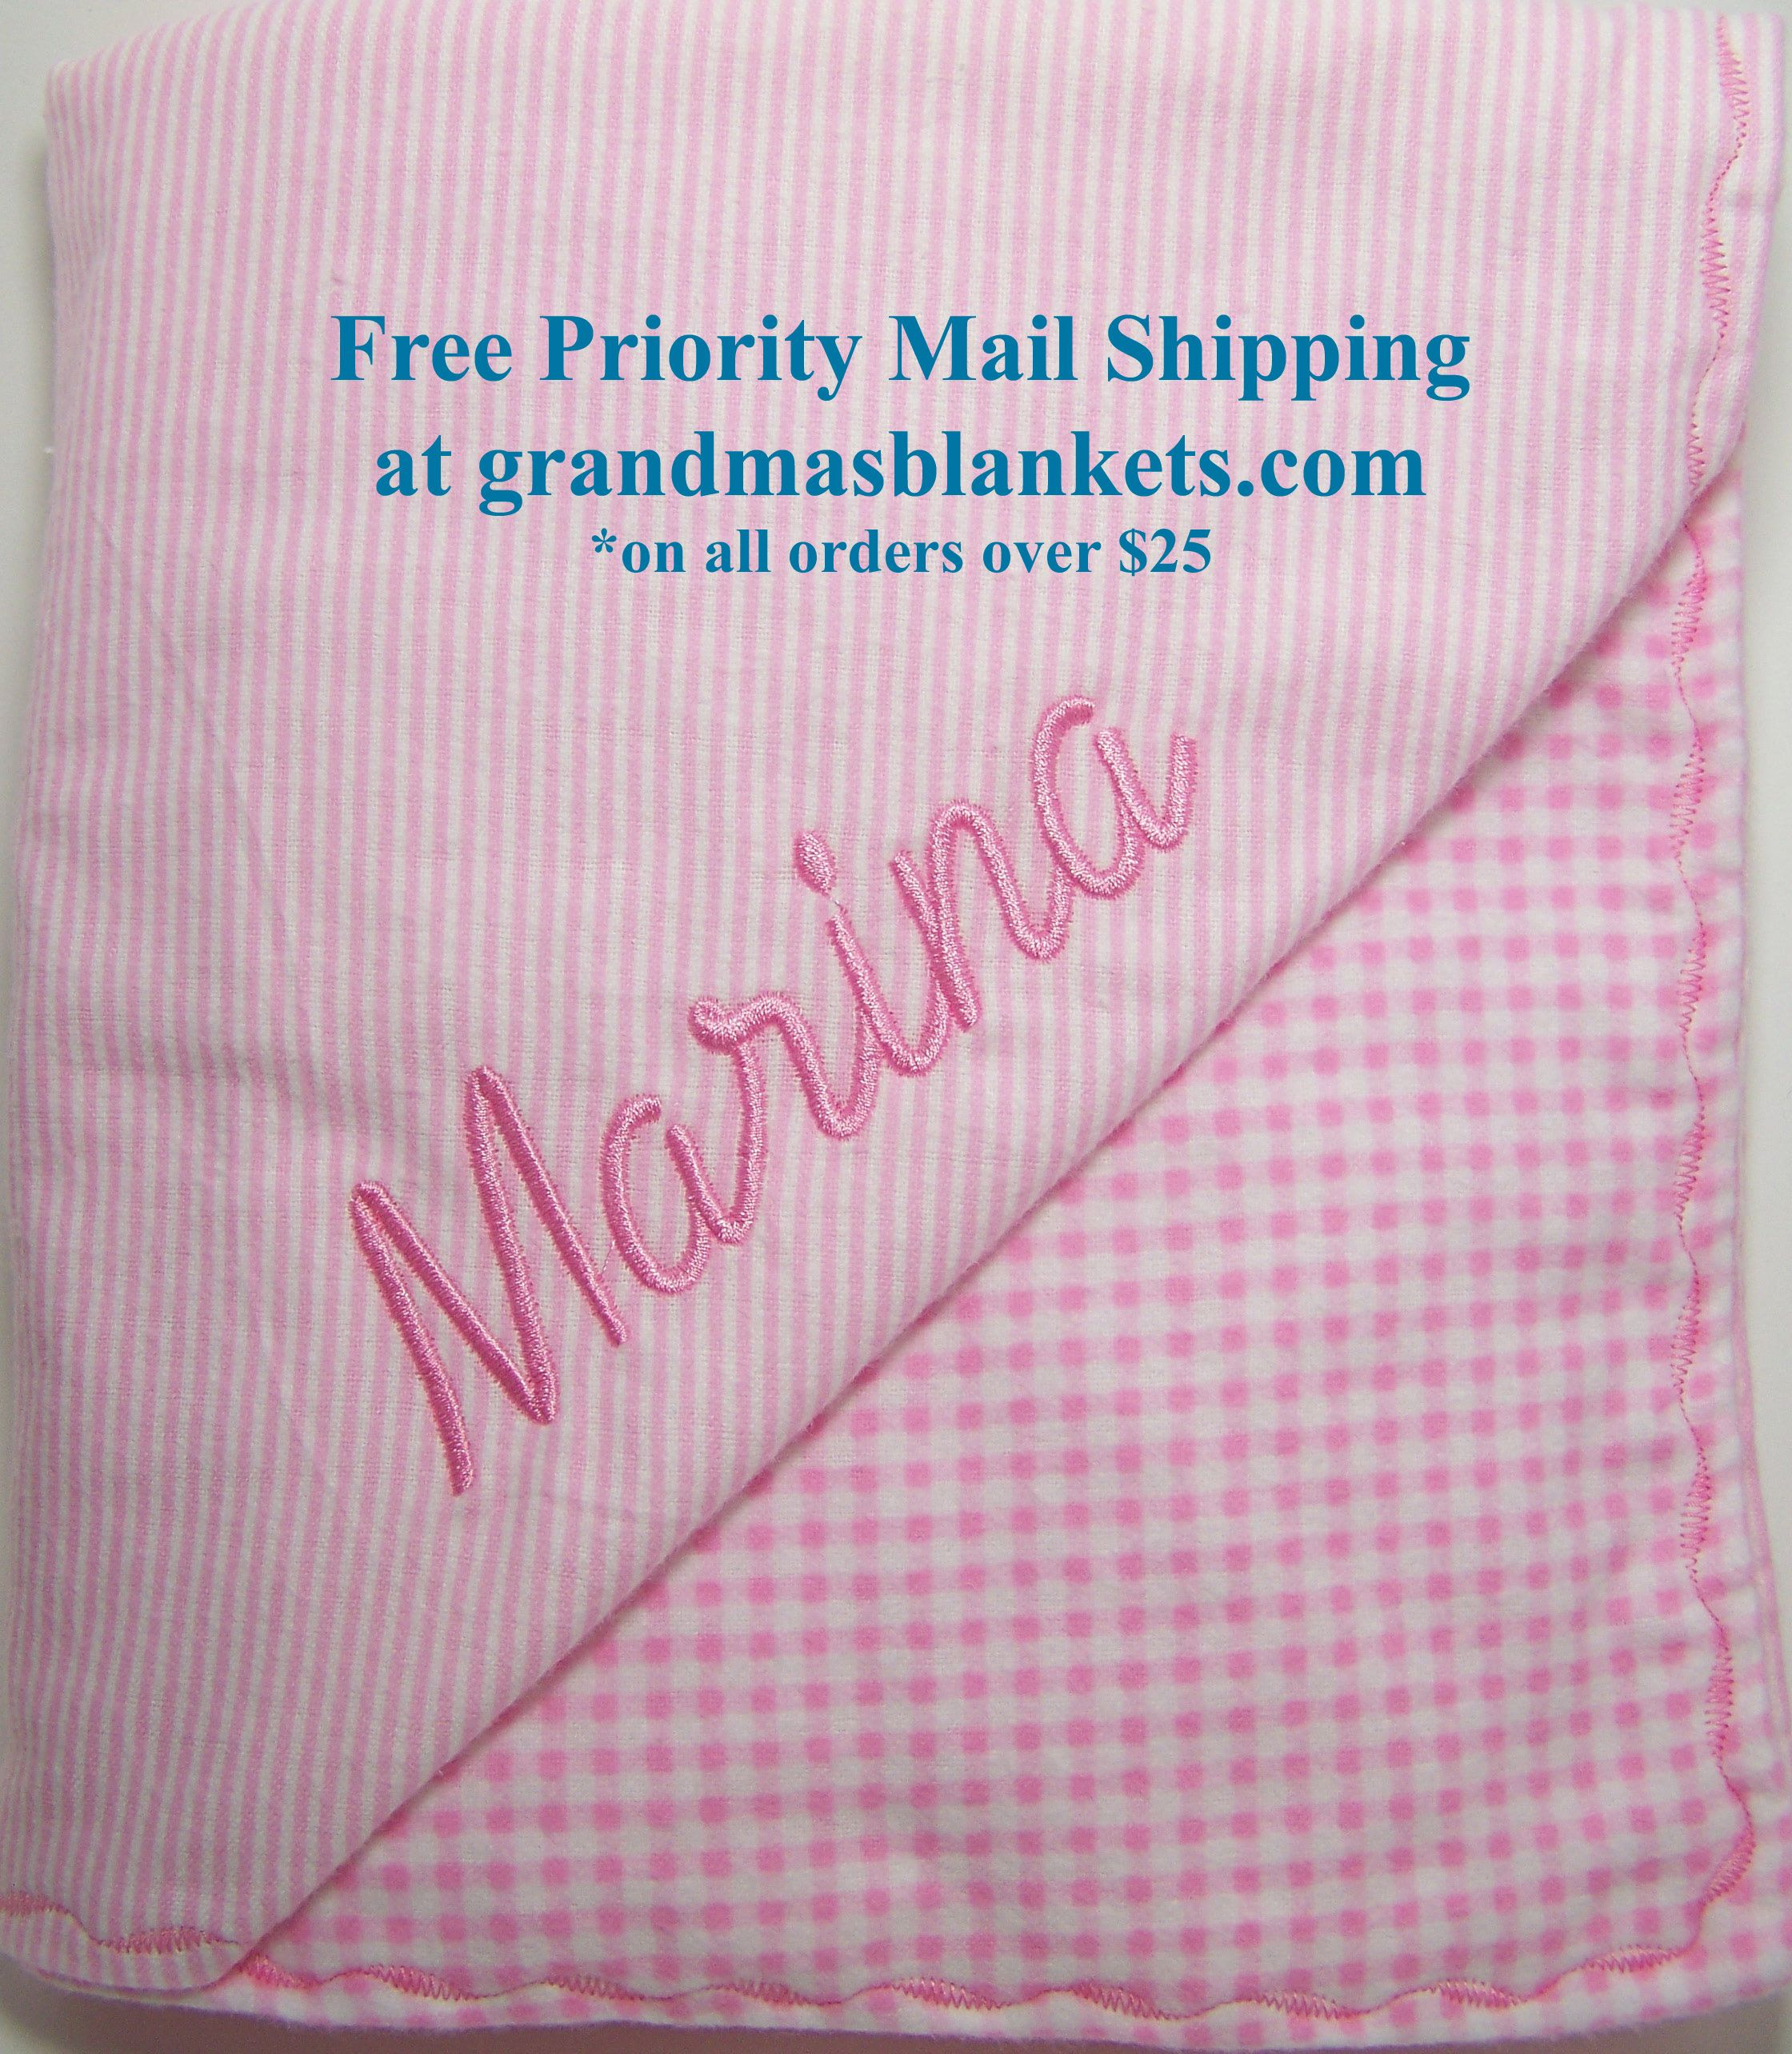 grandma s blankets has free priority mail shipping on all orders